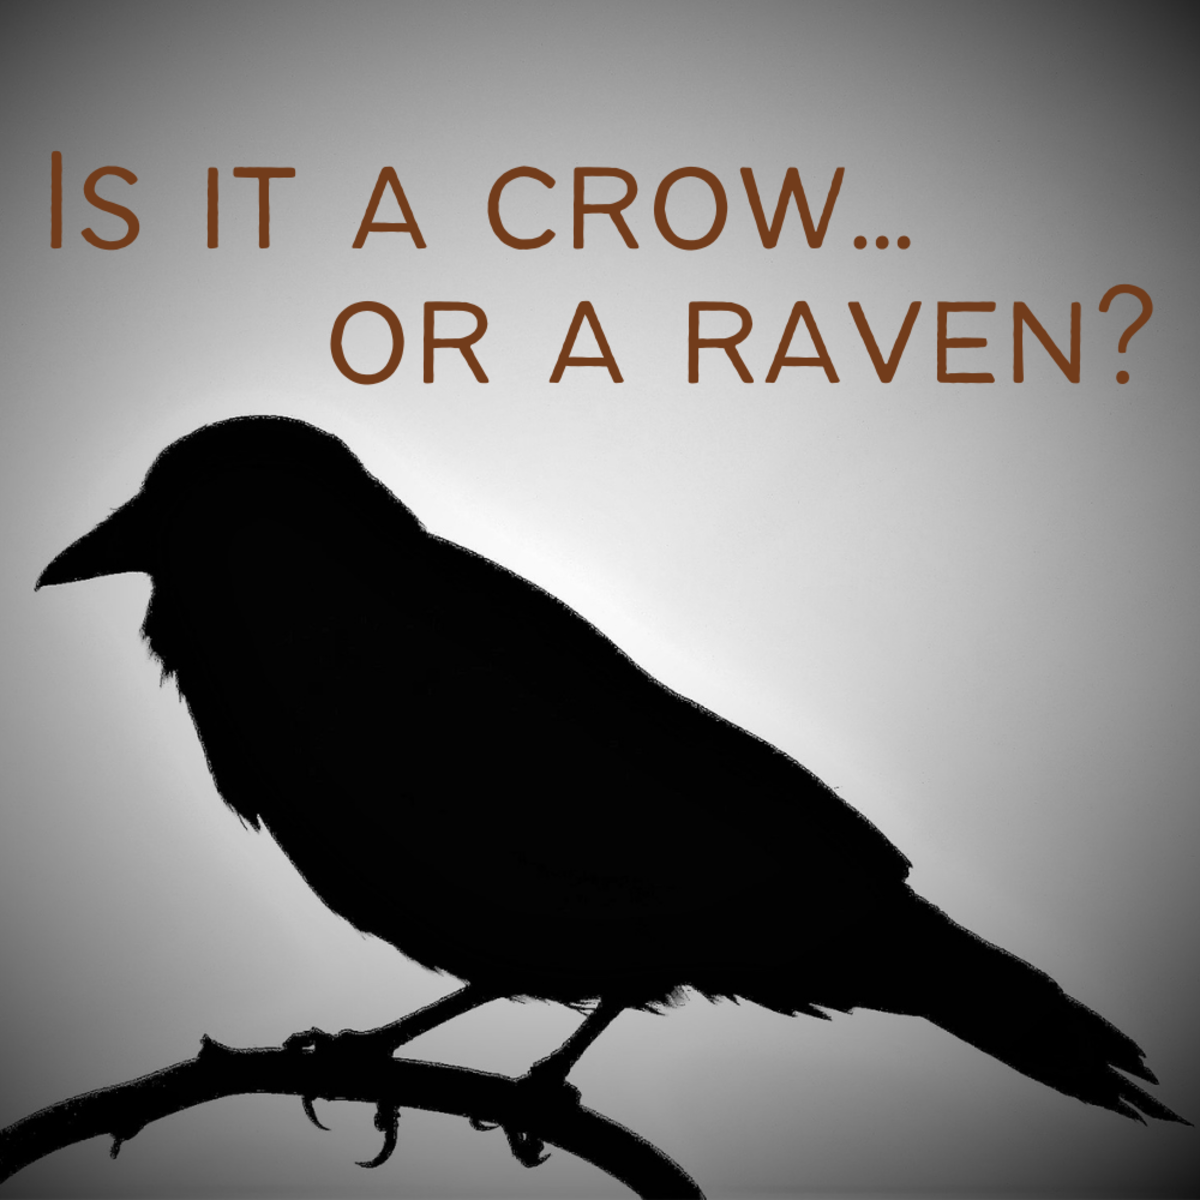 How to tell the difference between crows and ravens.